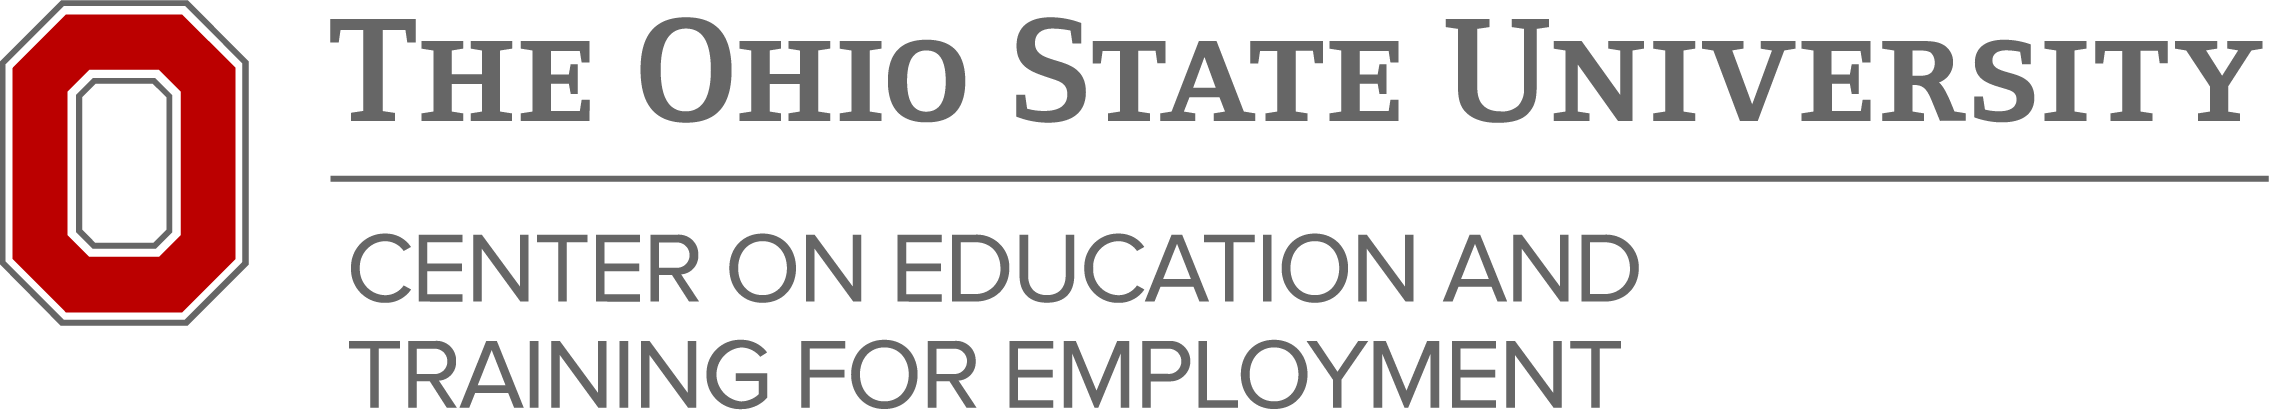 The Ohio State University Center on Education and Training for Employment logo